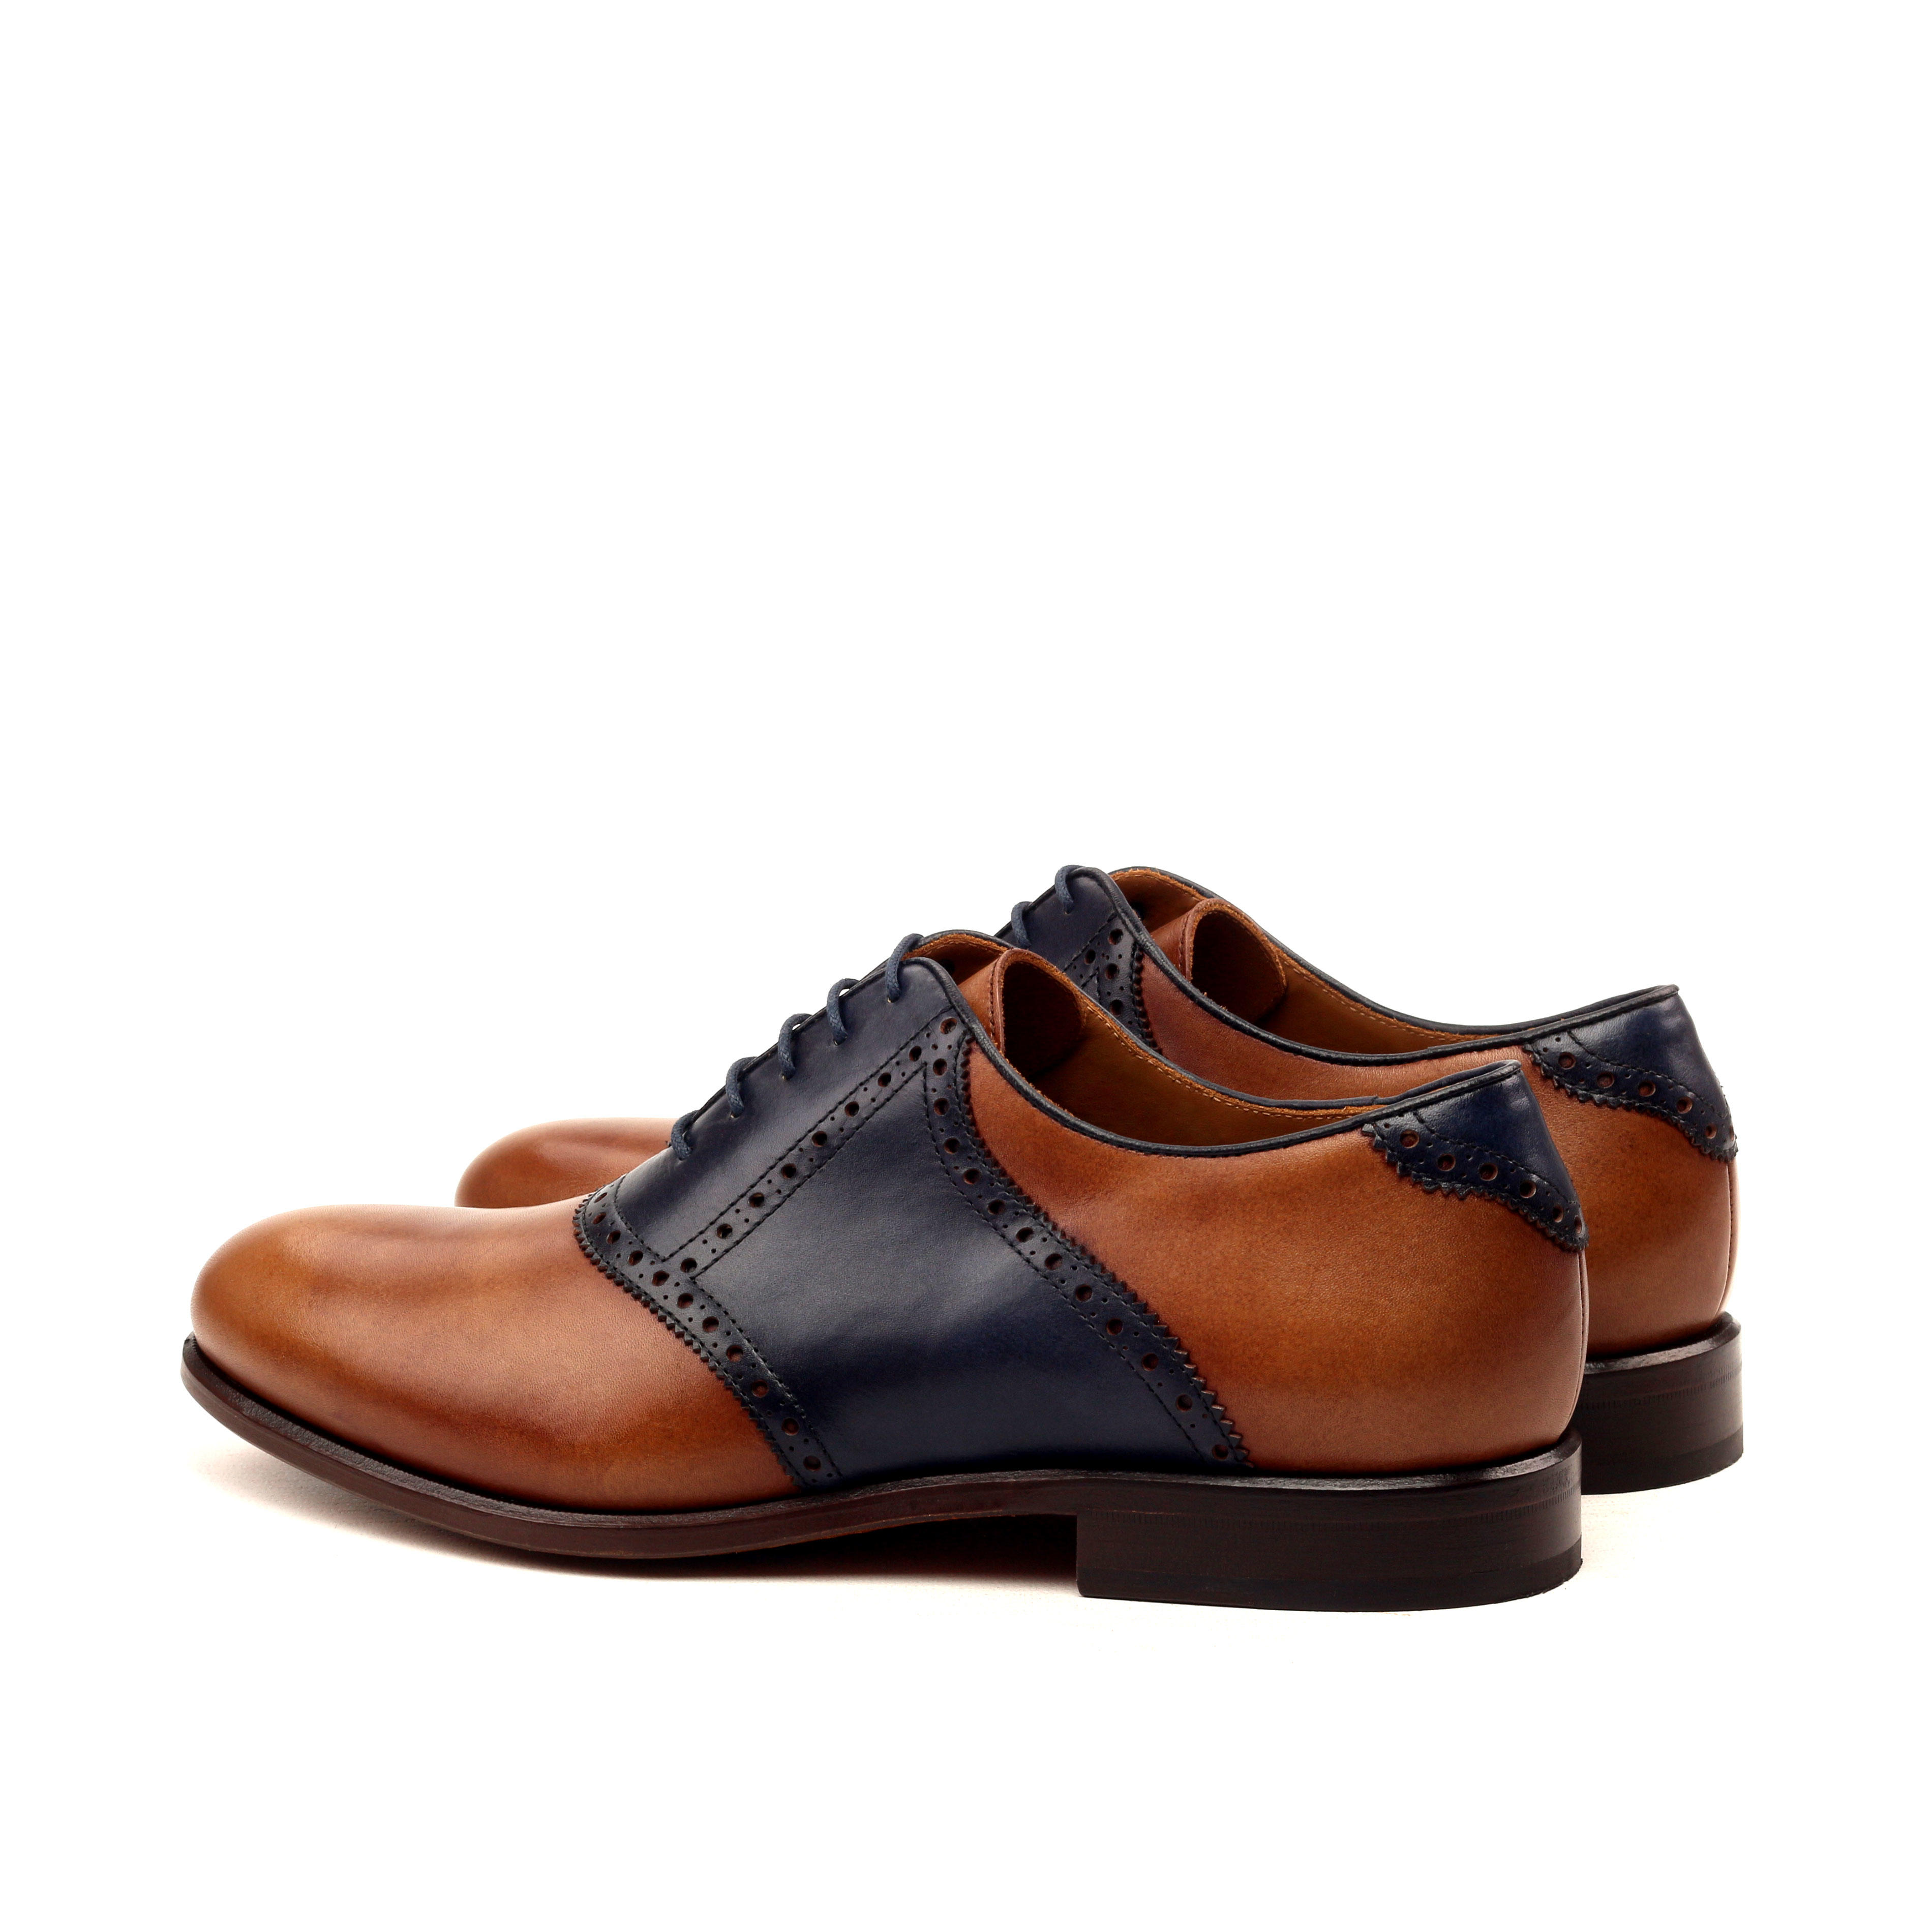 MANOR OF LONDON ''The Saddle' Navy & Brown Painted Calfskin Shoe Luxury Custom Initials Monogrammed Back Side View